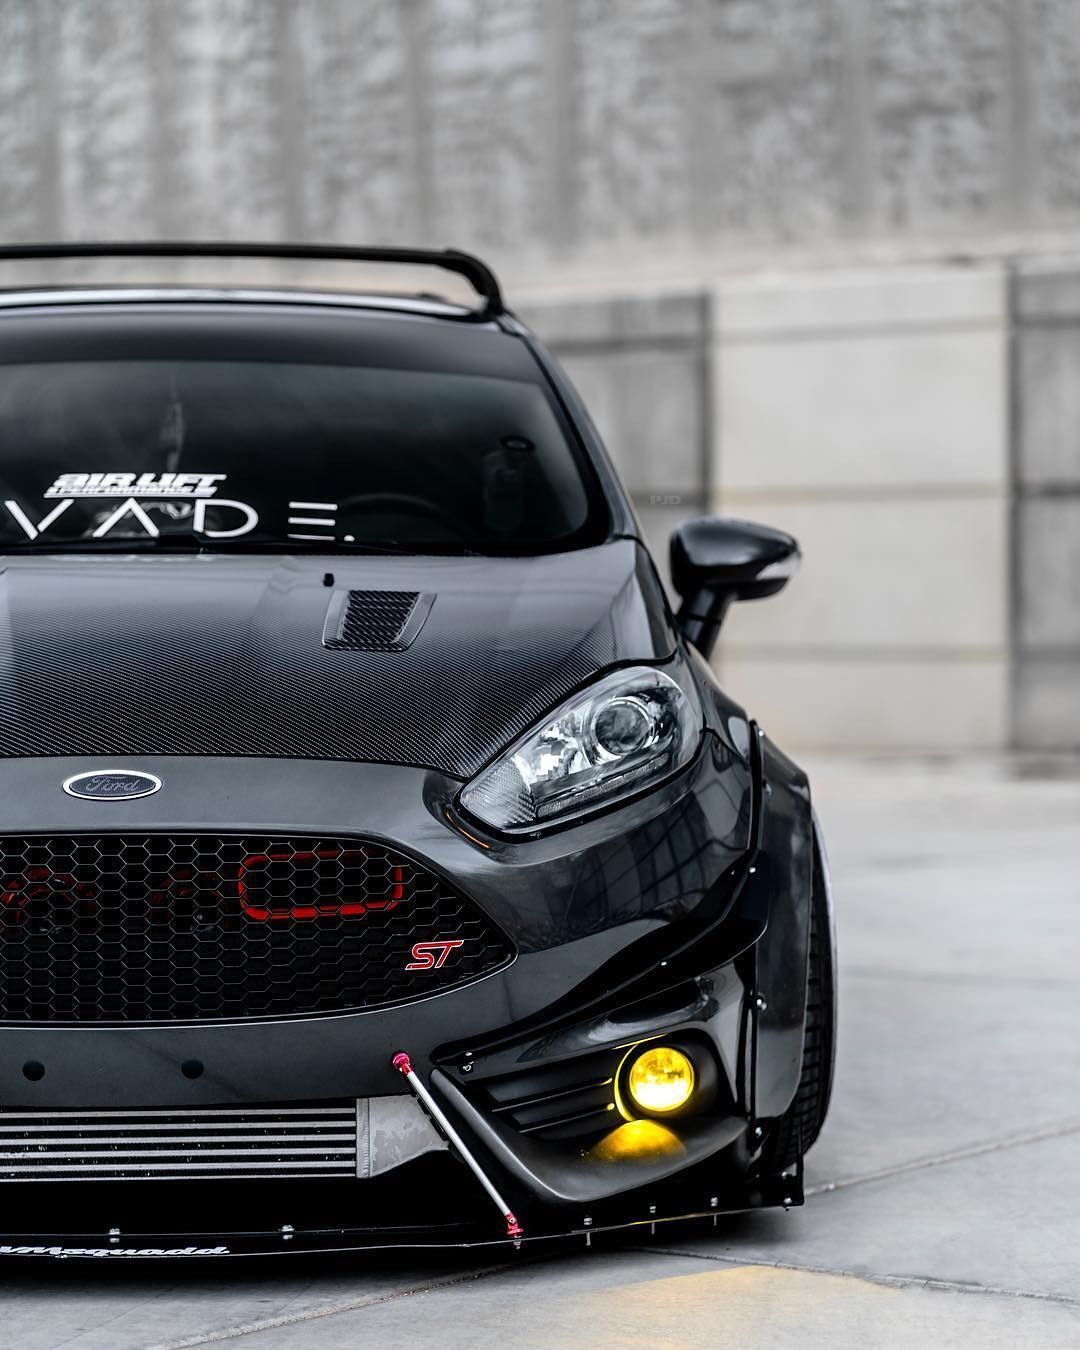 Pin By Joshua Mallory On Focus Life Ford Focus St Ford Fiesta Modified Subaru Cars